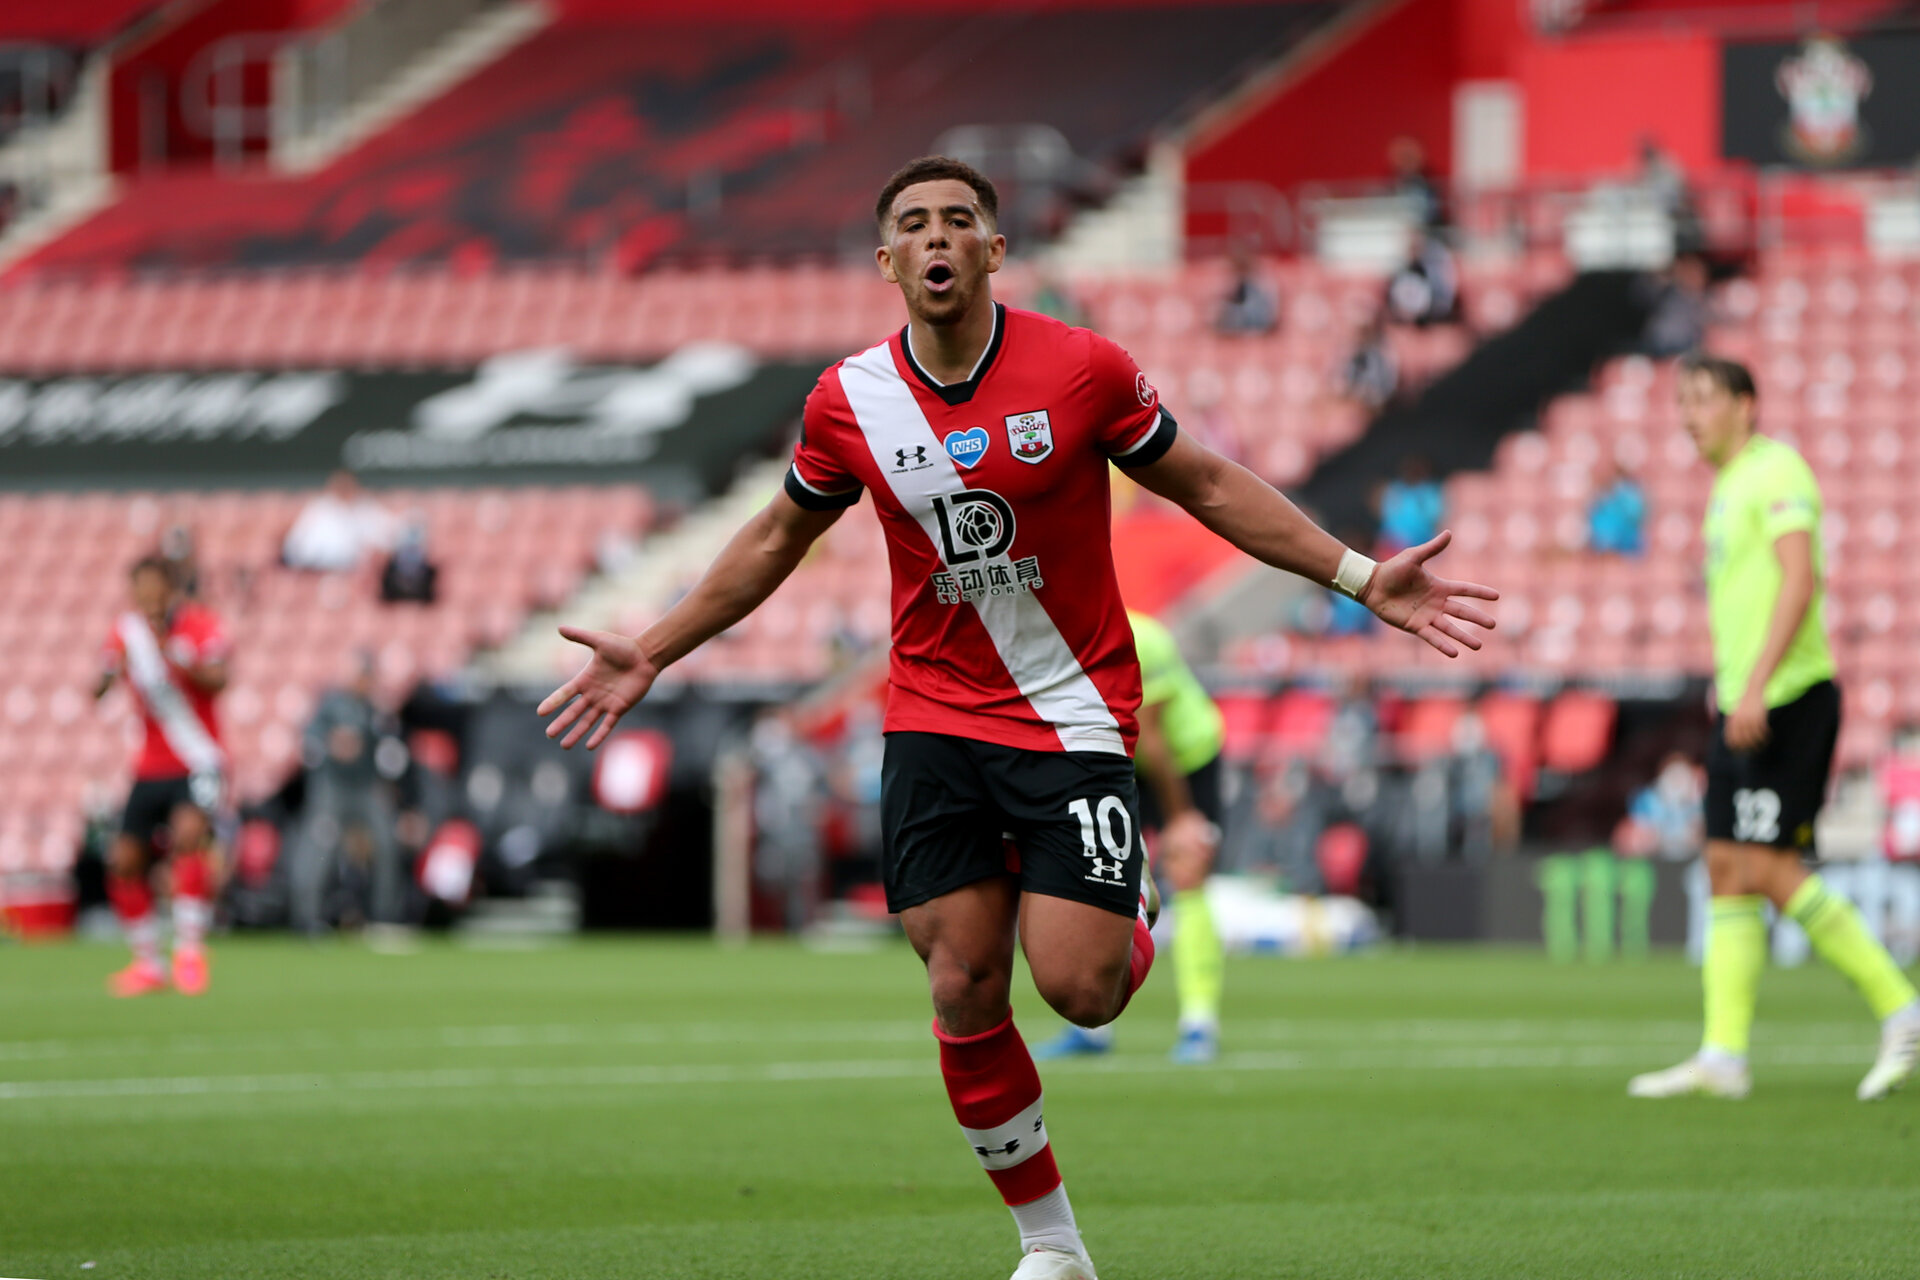 SOUTHAMPTON, ENGLAND - JULY 26: Ché Adams celebrating his second goal during the Premier League match between Southampton FC and Sheffield United at St Mary's Stadium on April 17, 2020 in Southampton, United Kingdom. (Photo by Chris Moorhouse/Southampton FC via Getty Images)